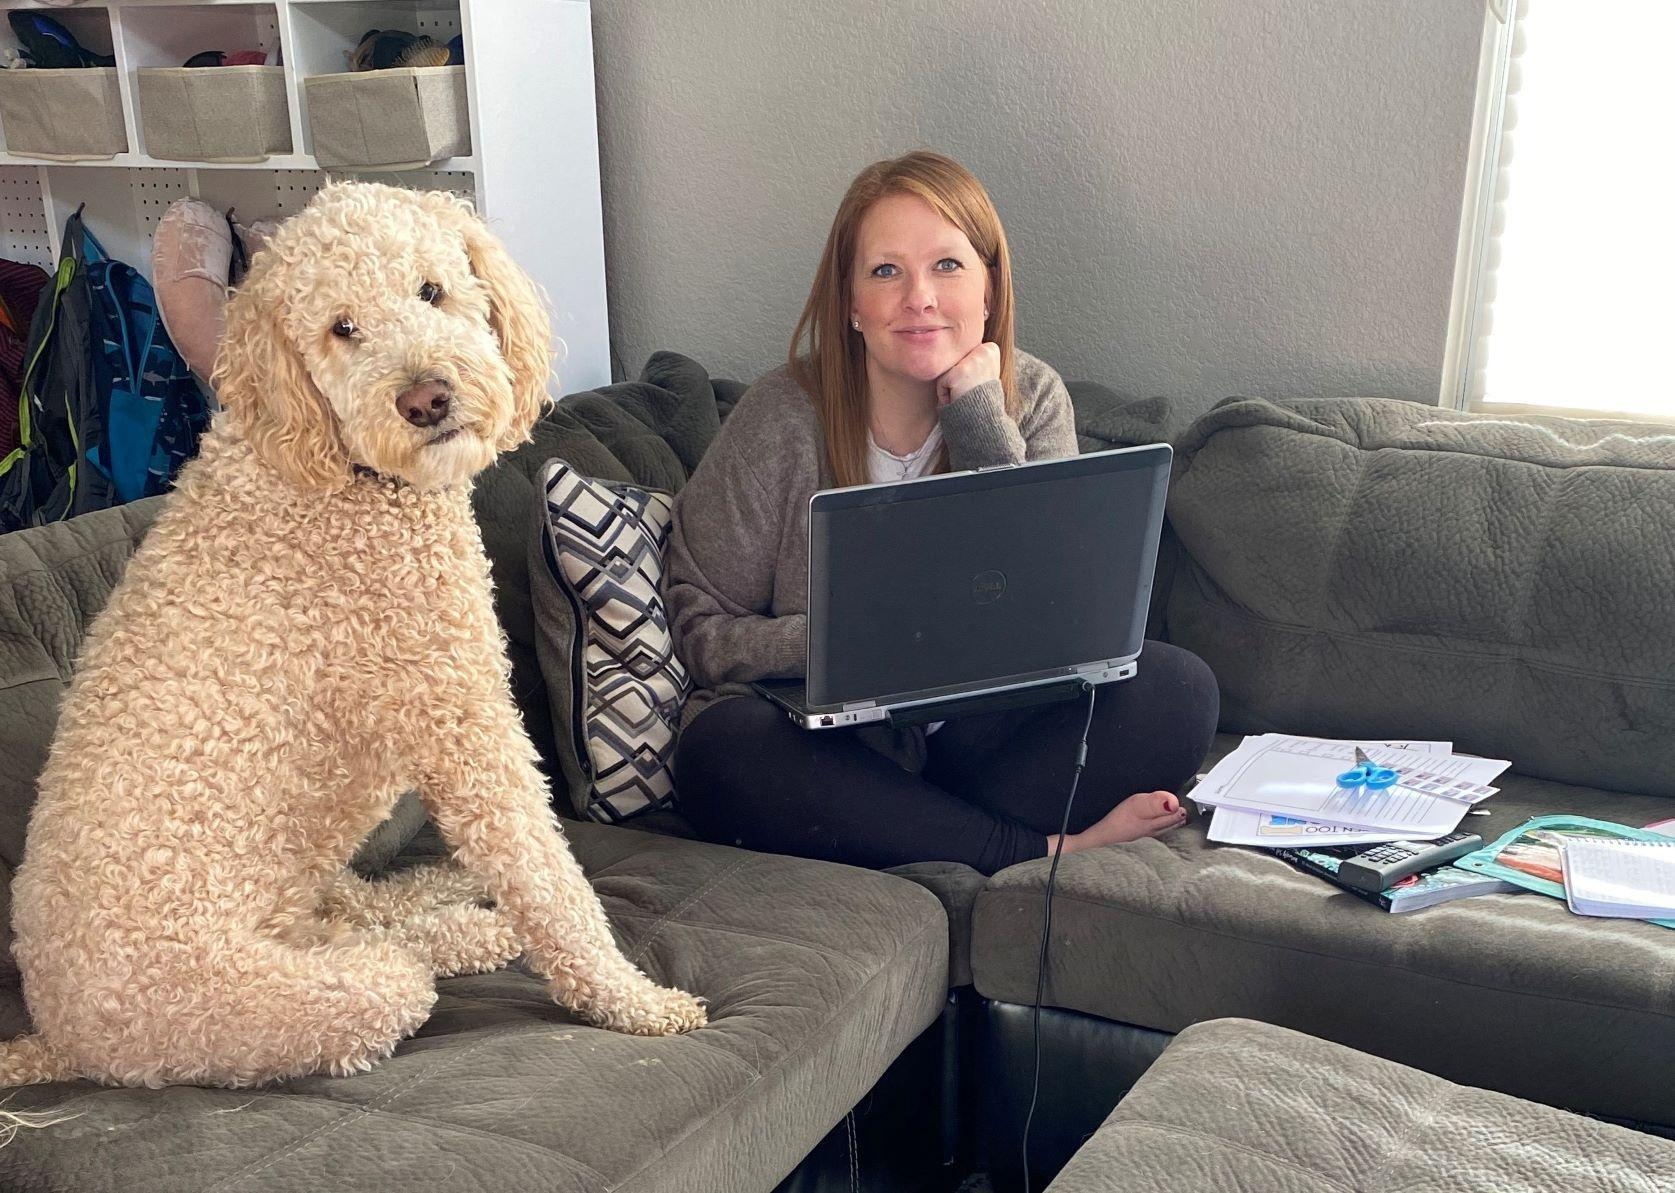 Woman working from home with very large dog.